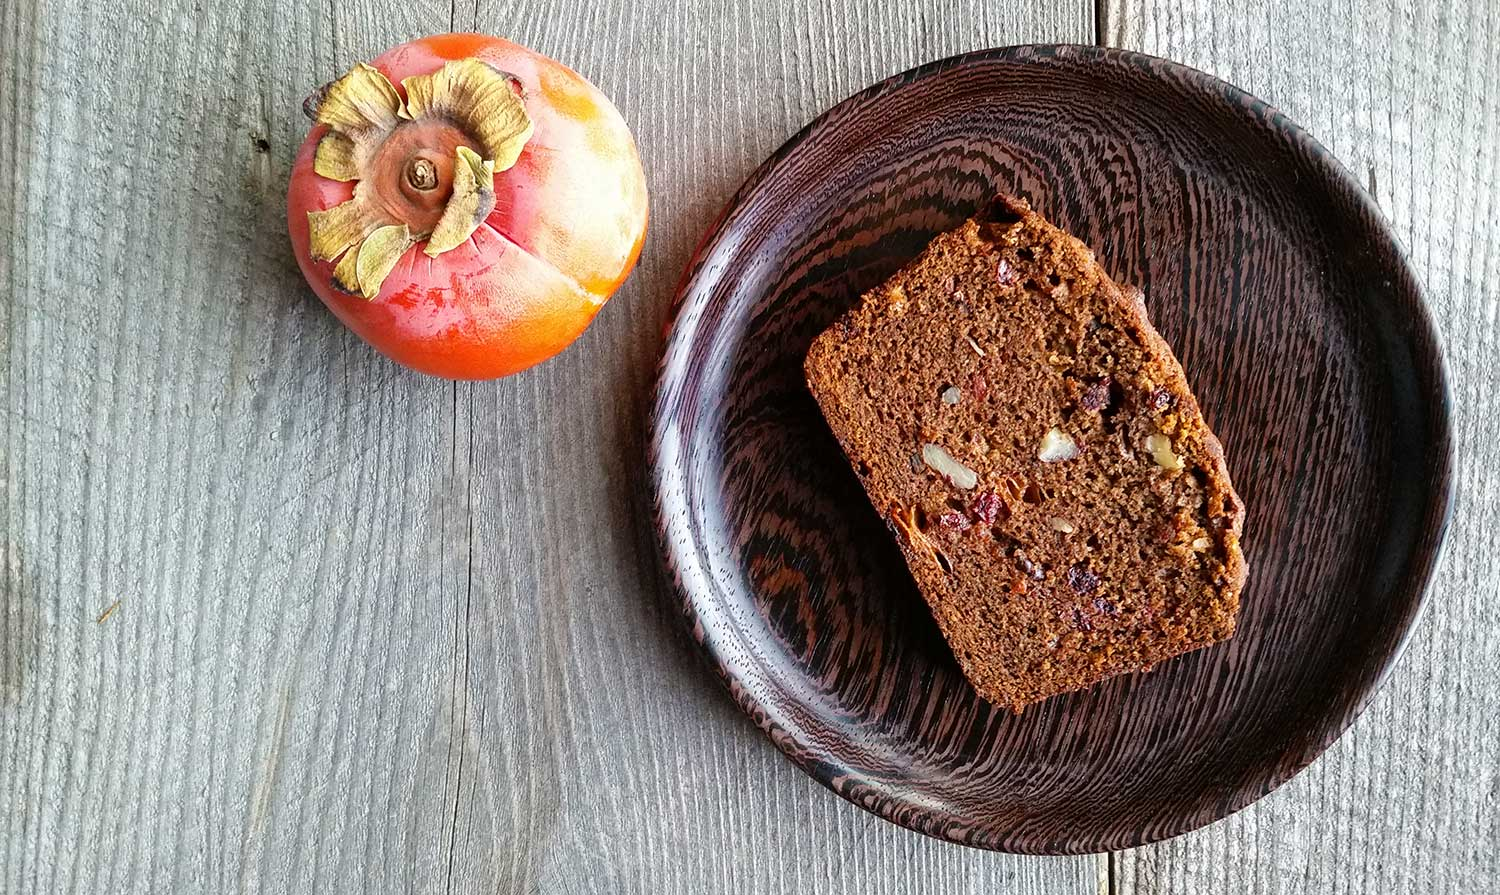 overhead view of persimmon bread, with a hachiya persimmon